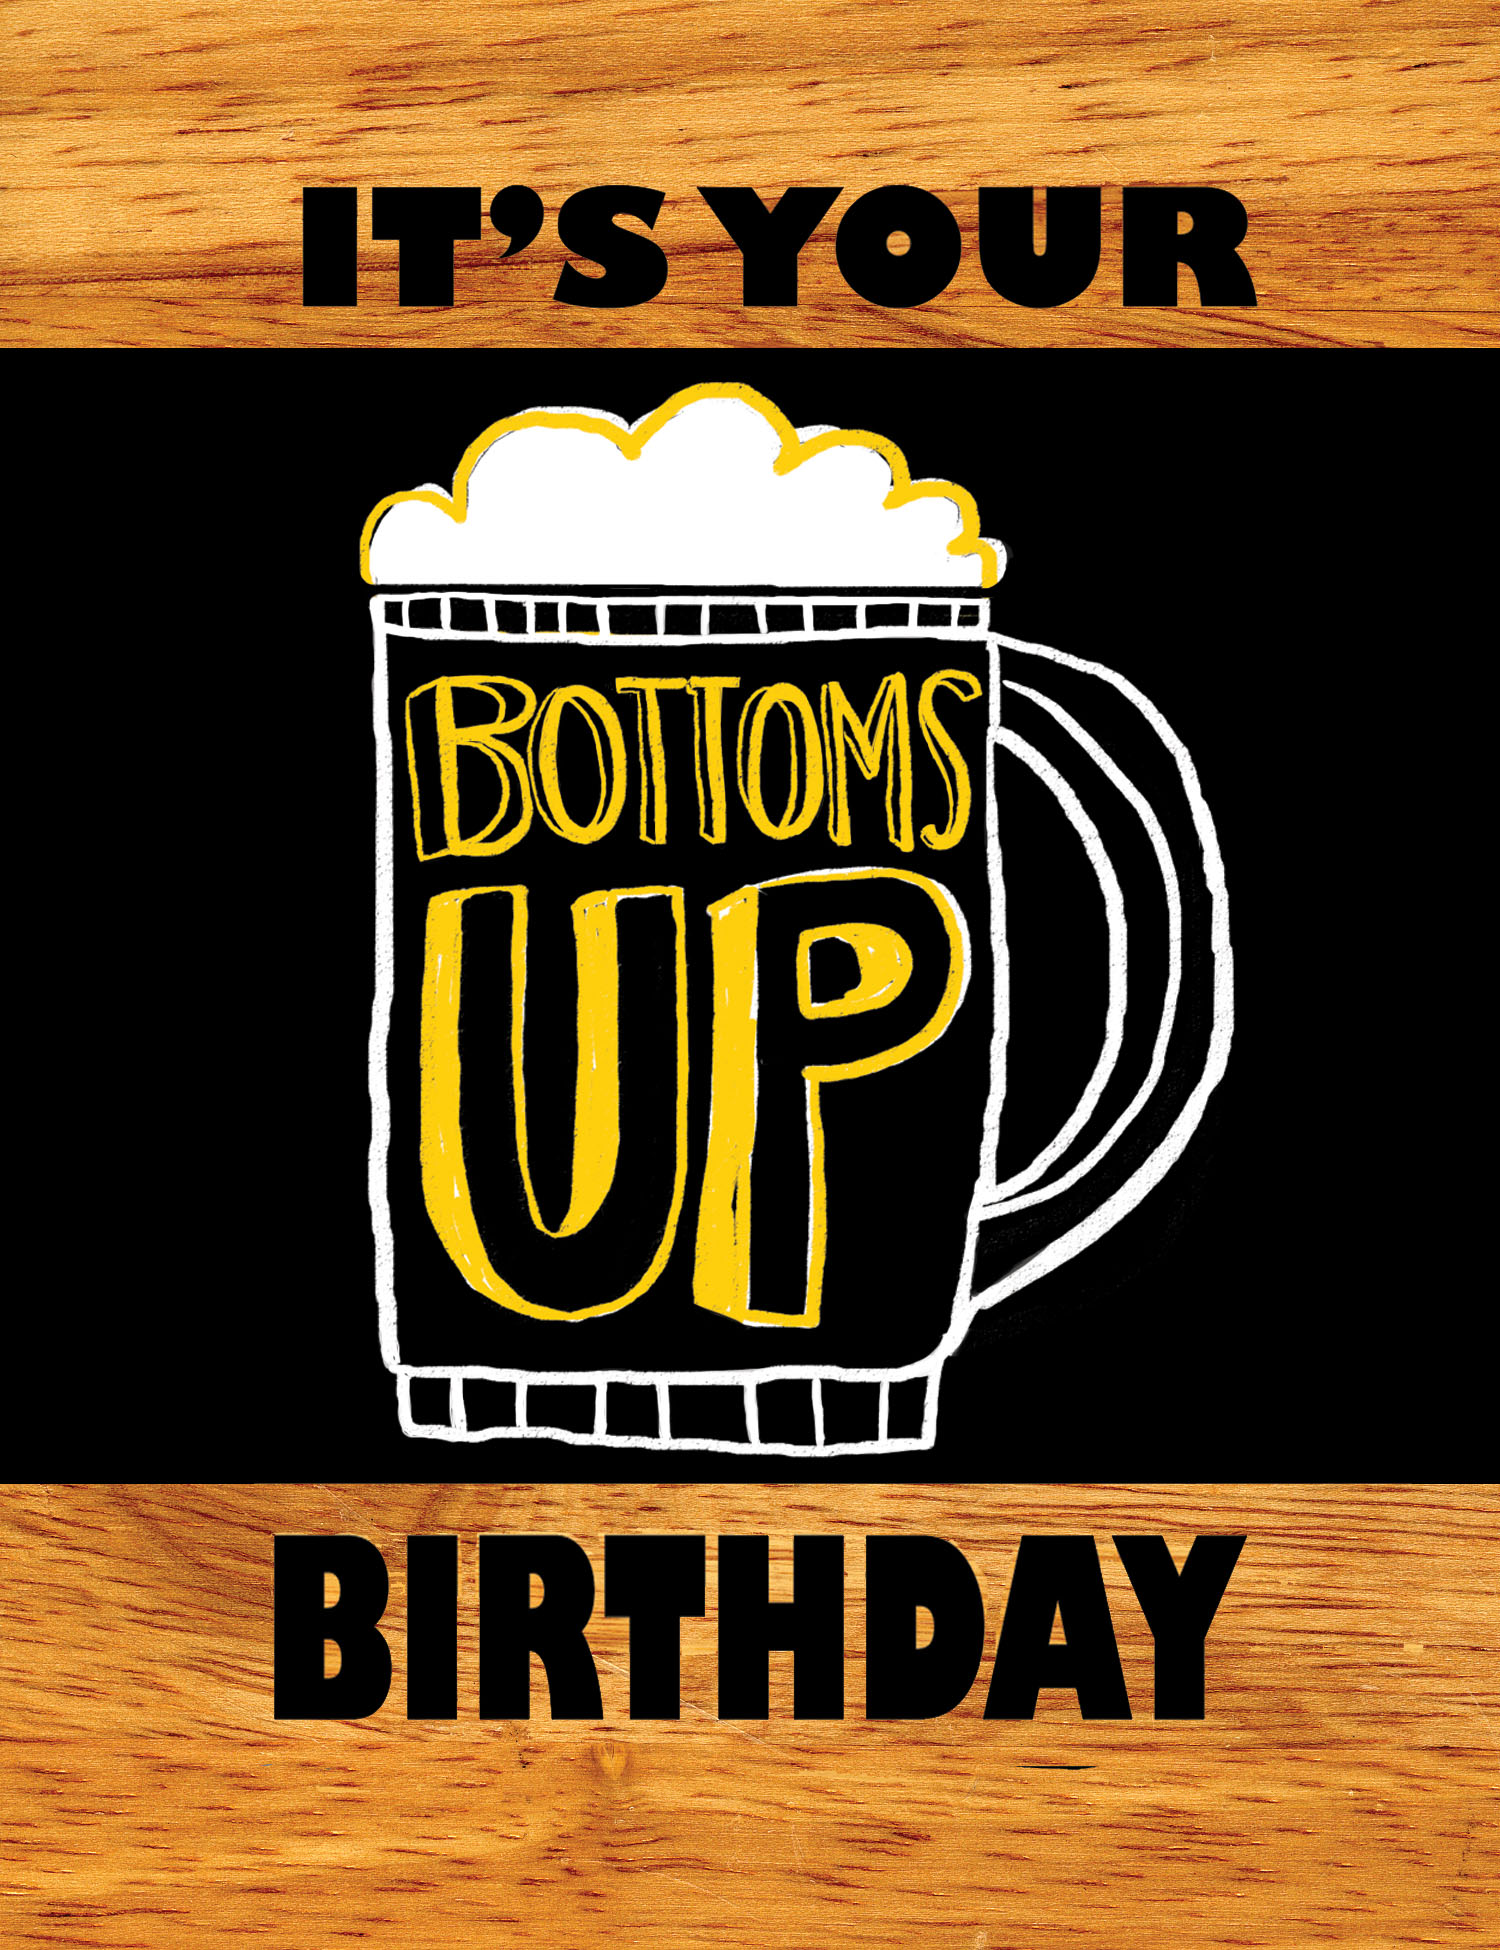 Bottoms Up illustration & lettering